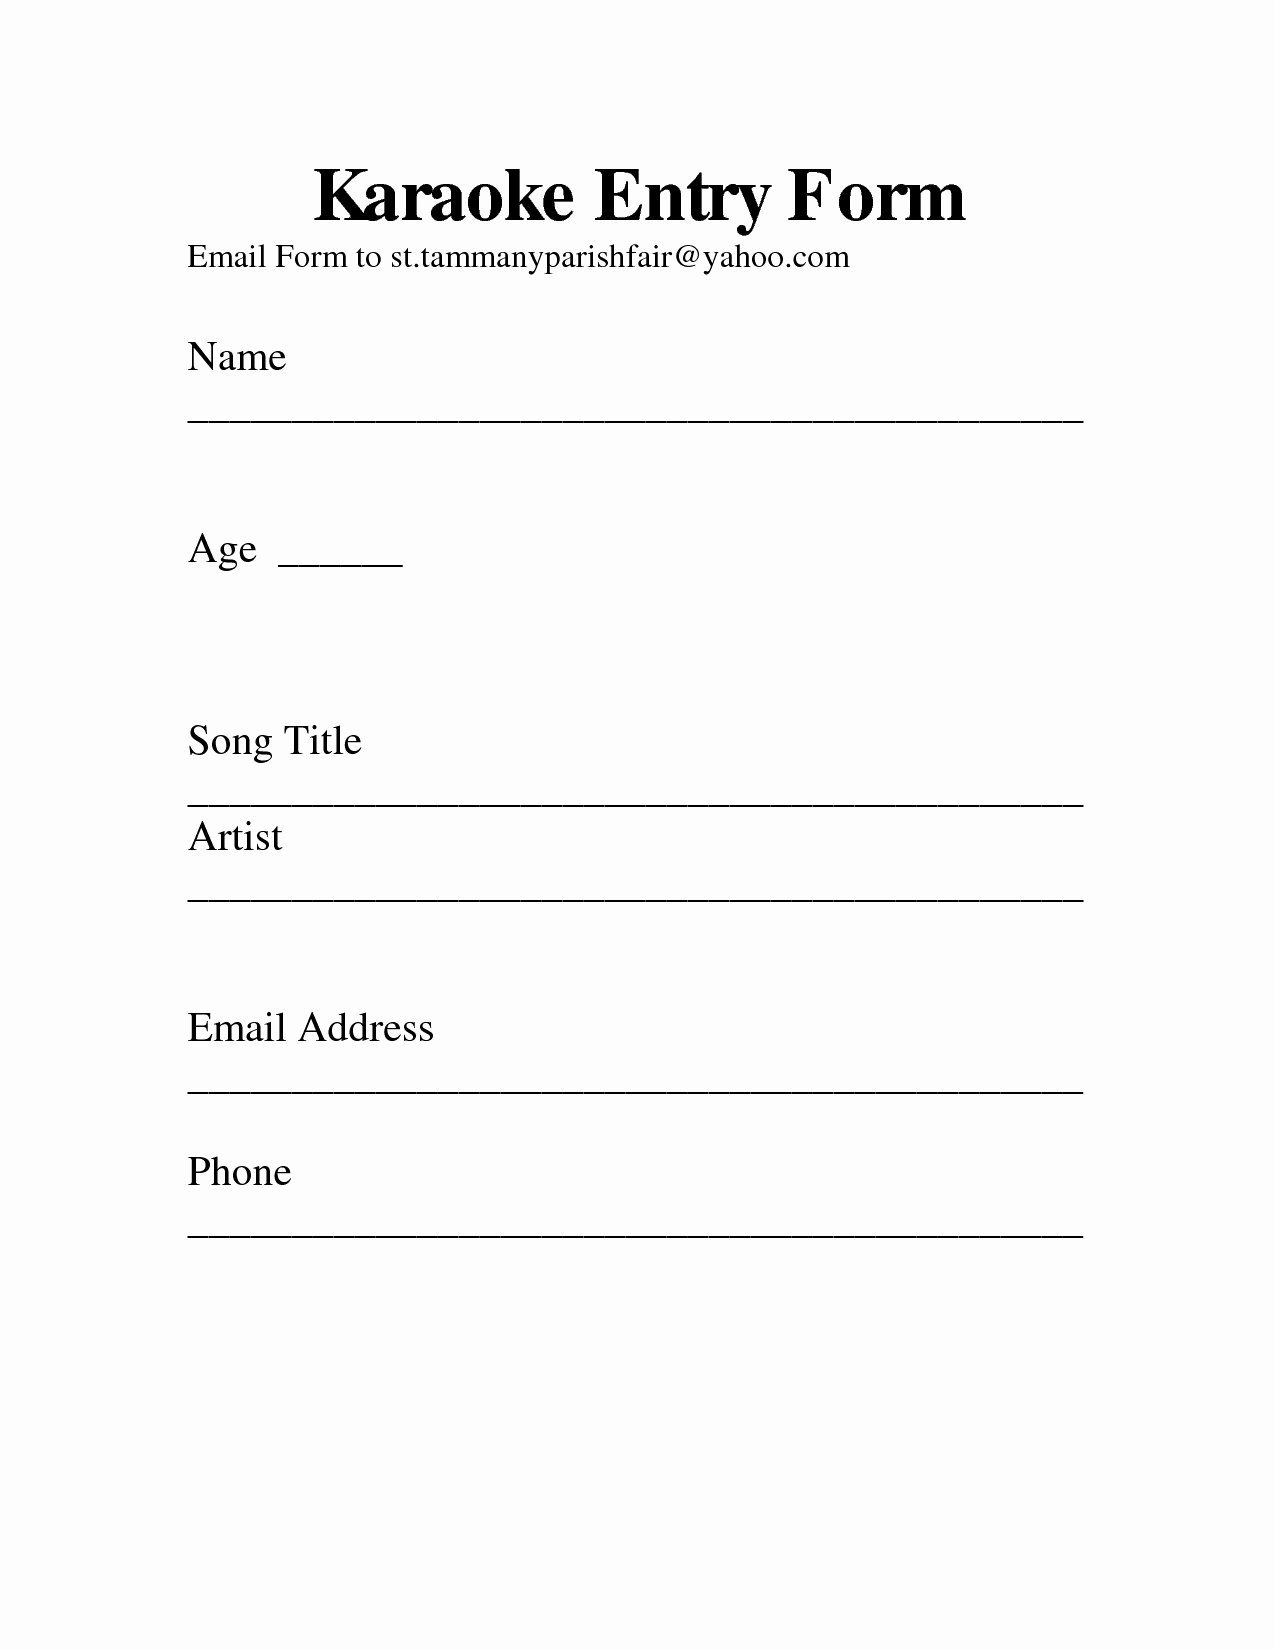 Draw Entry form Template Luxury Drawing Entry form Template Fresh Home Party Drawing Entry